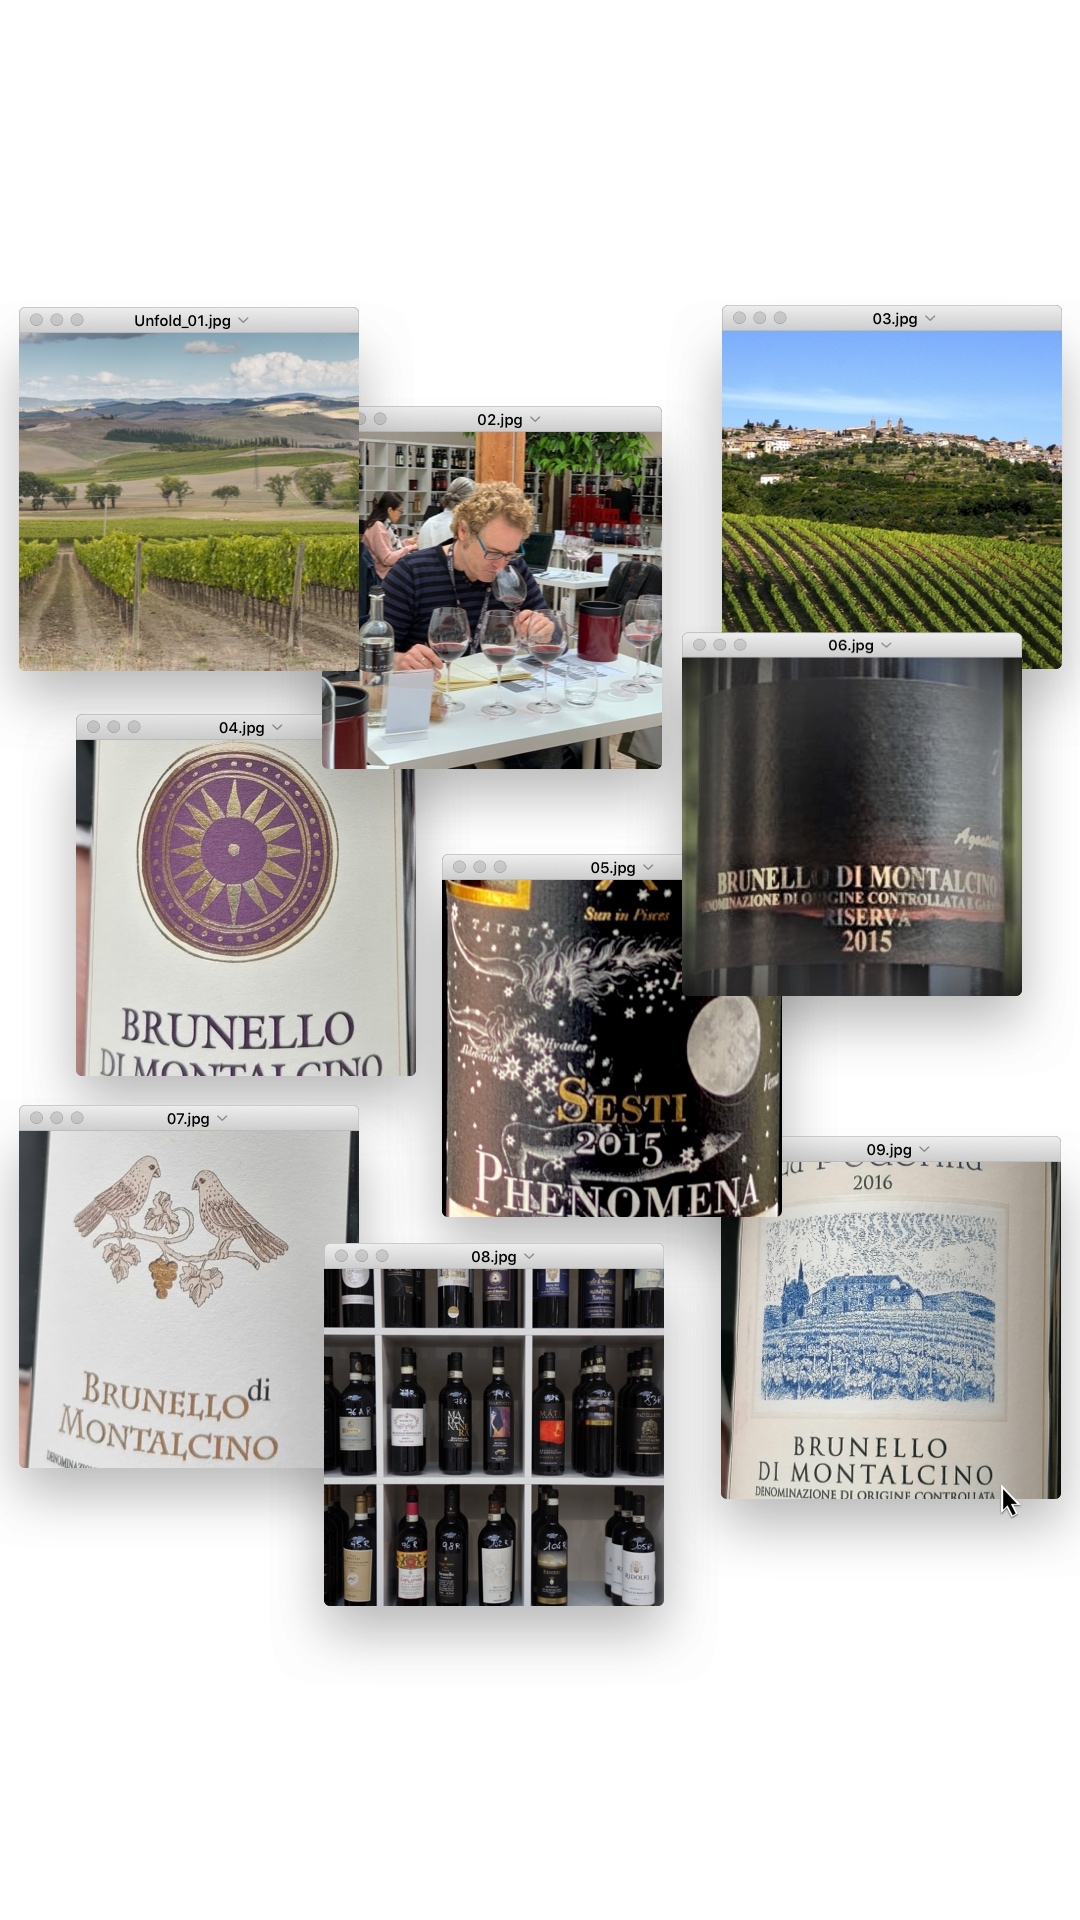 Benvenuto Brunello 2021 Preview – Tasting Sensational New Vintage Brunellos – A Tempting Invitation To Discover the Wines and the Captivating Region of Montalcino – by Filippo Magnani